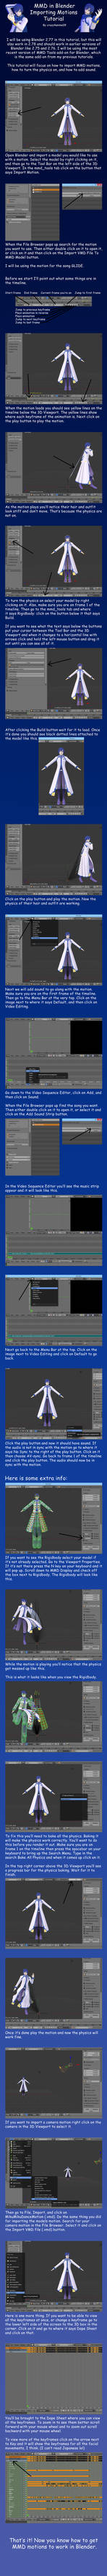 Meta Blender Tutorials by gallagher101 on DeviantArt